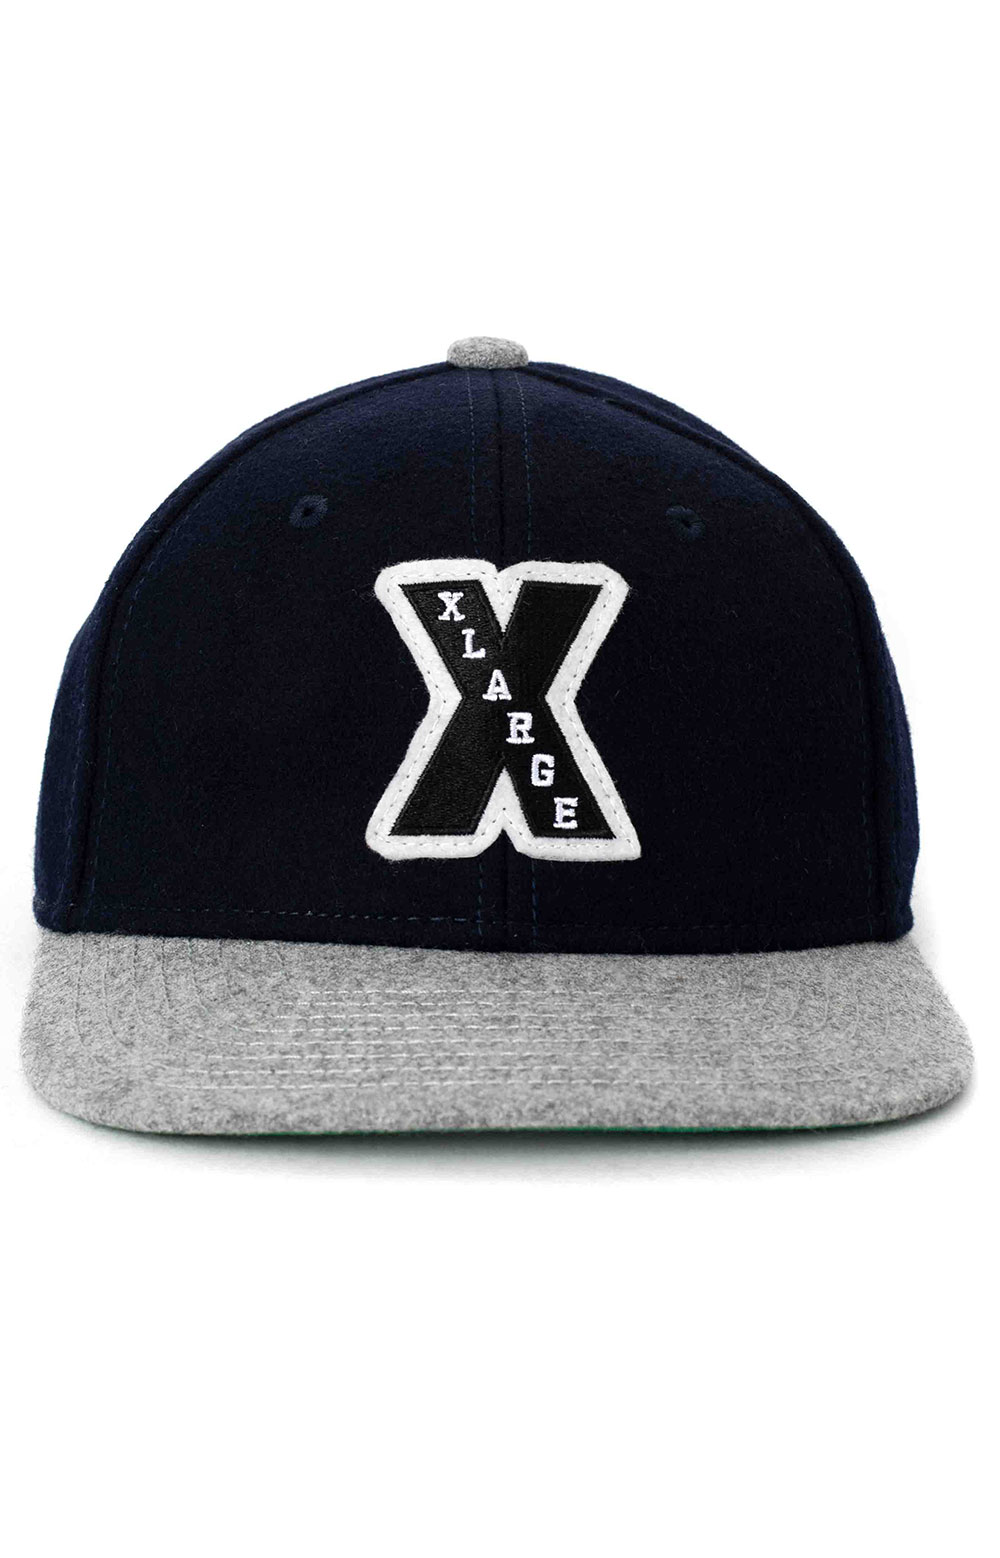 Patched Wool Cap - Navy 2